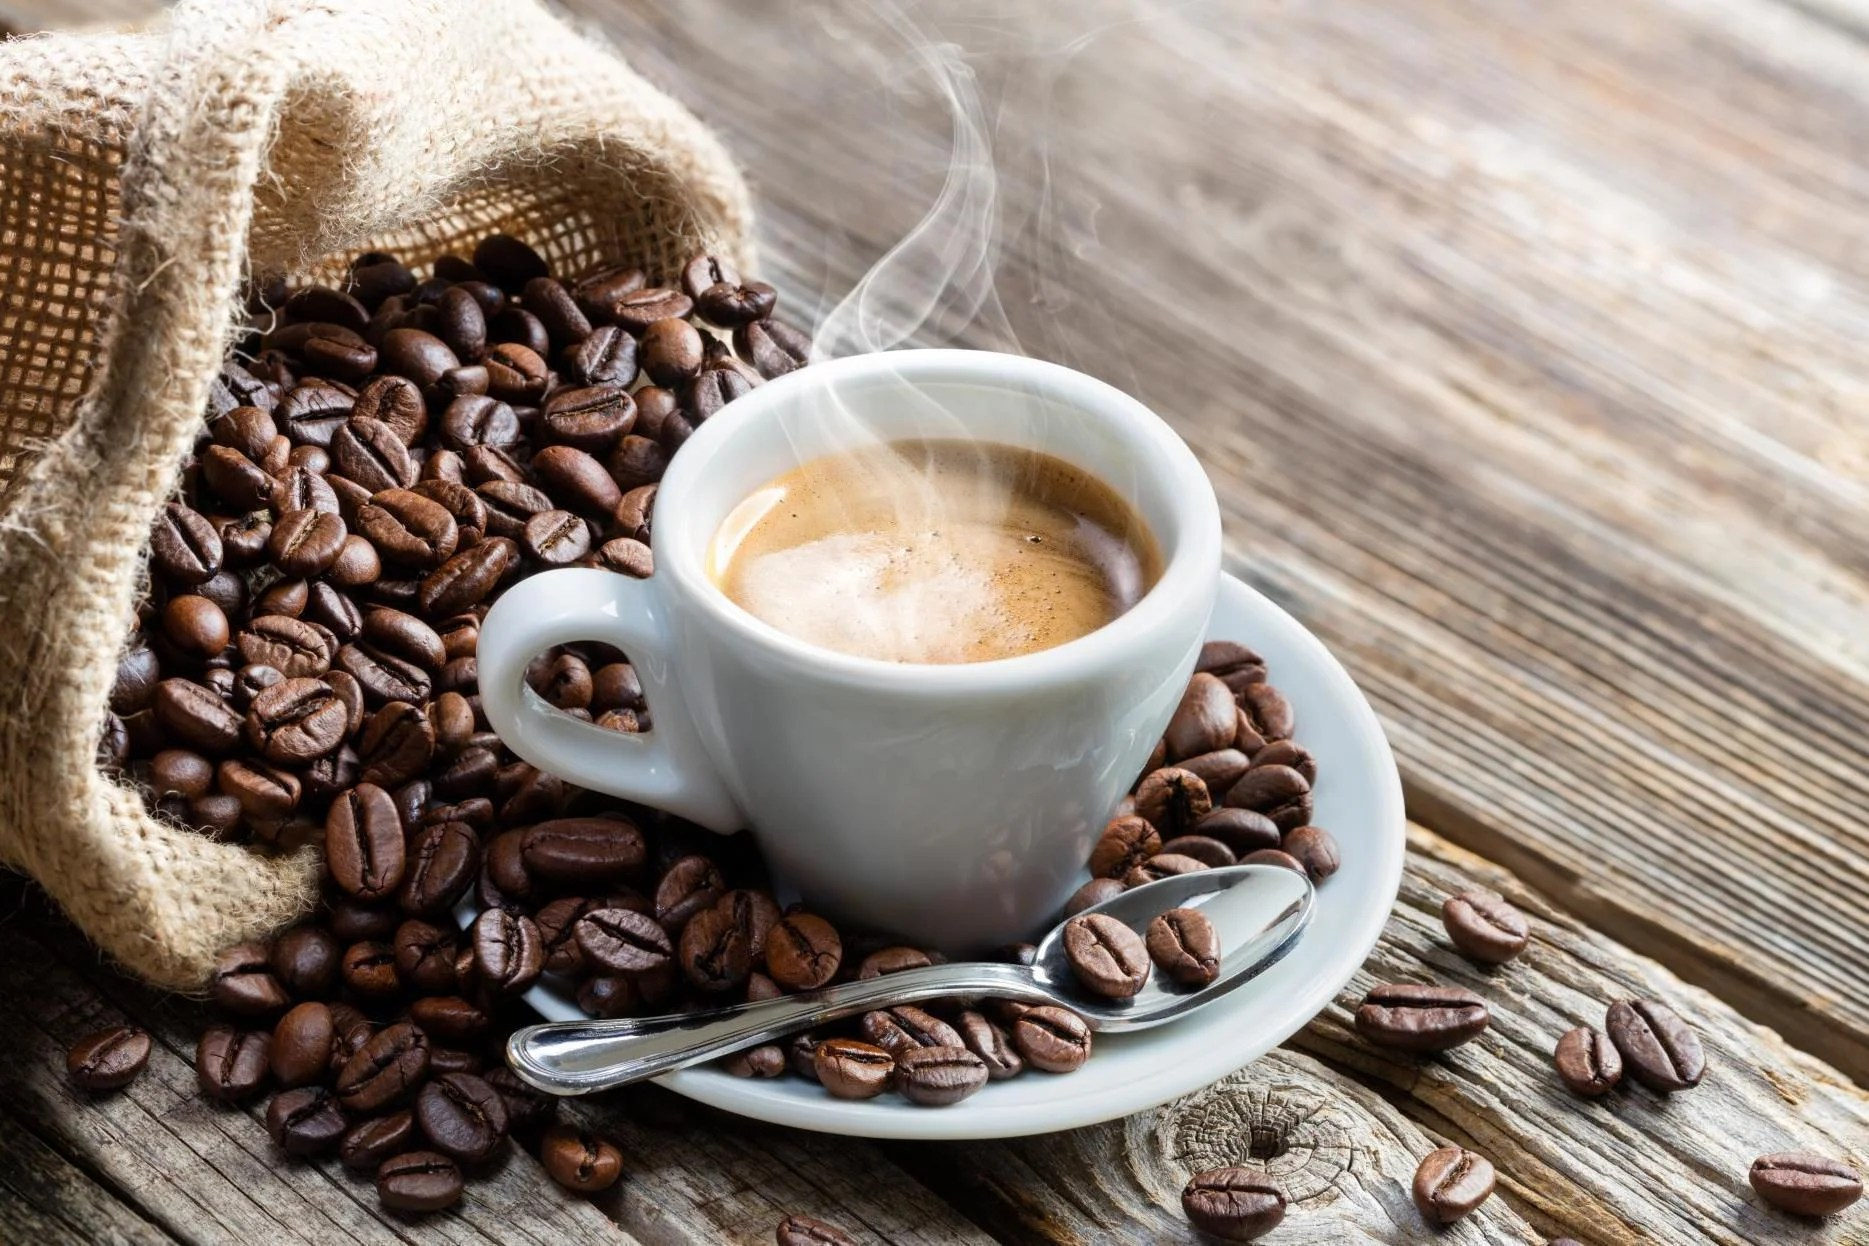 Caffeine Coffee How Much The Time Of Day You Should Stop Drinking Coffee According To